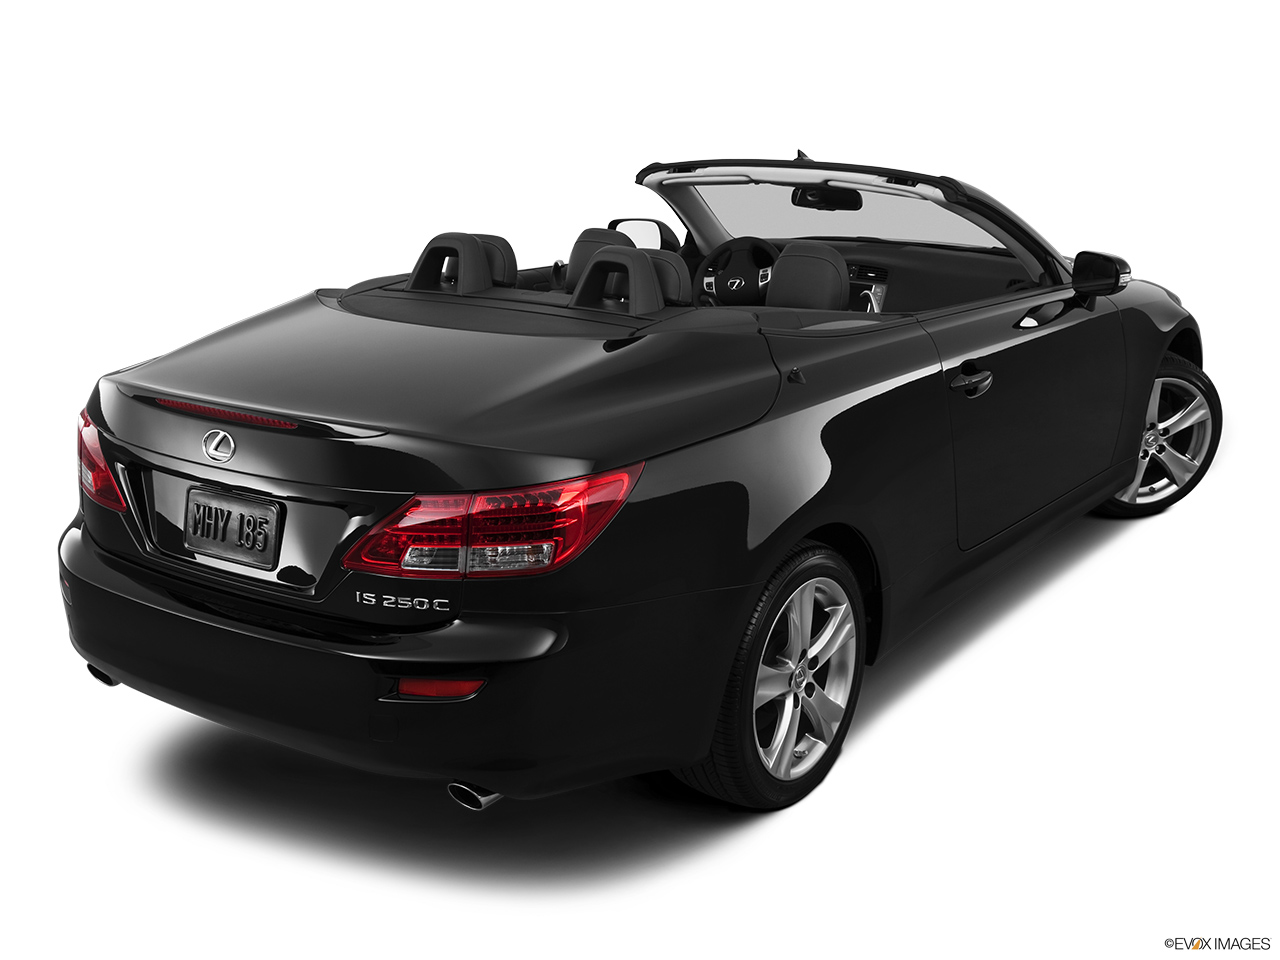 2013 Lexus IS 250C IS 250 C RWD Rear 3/4 angle view.